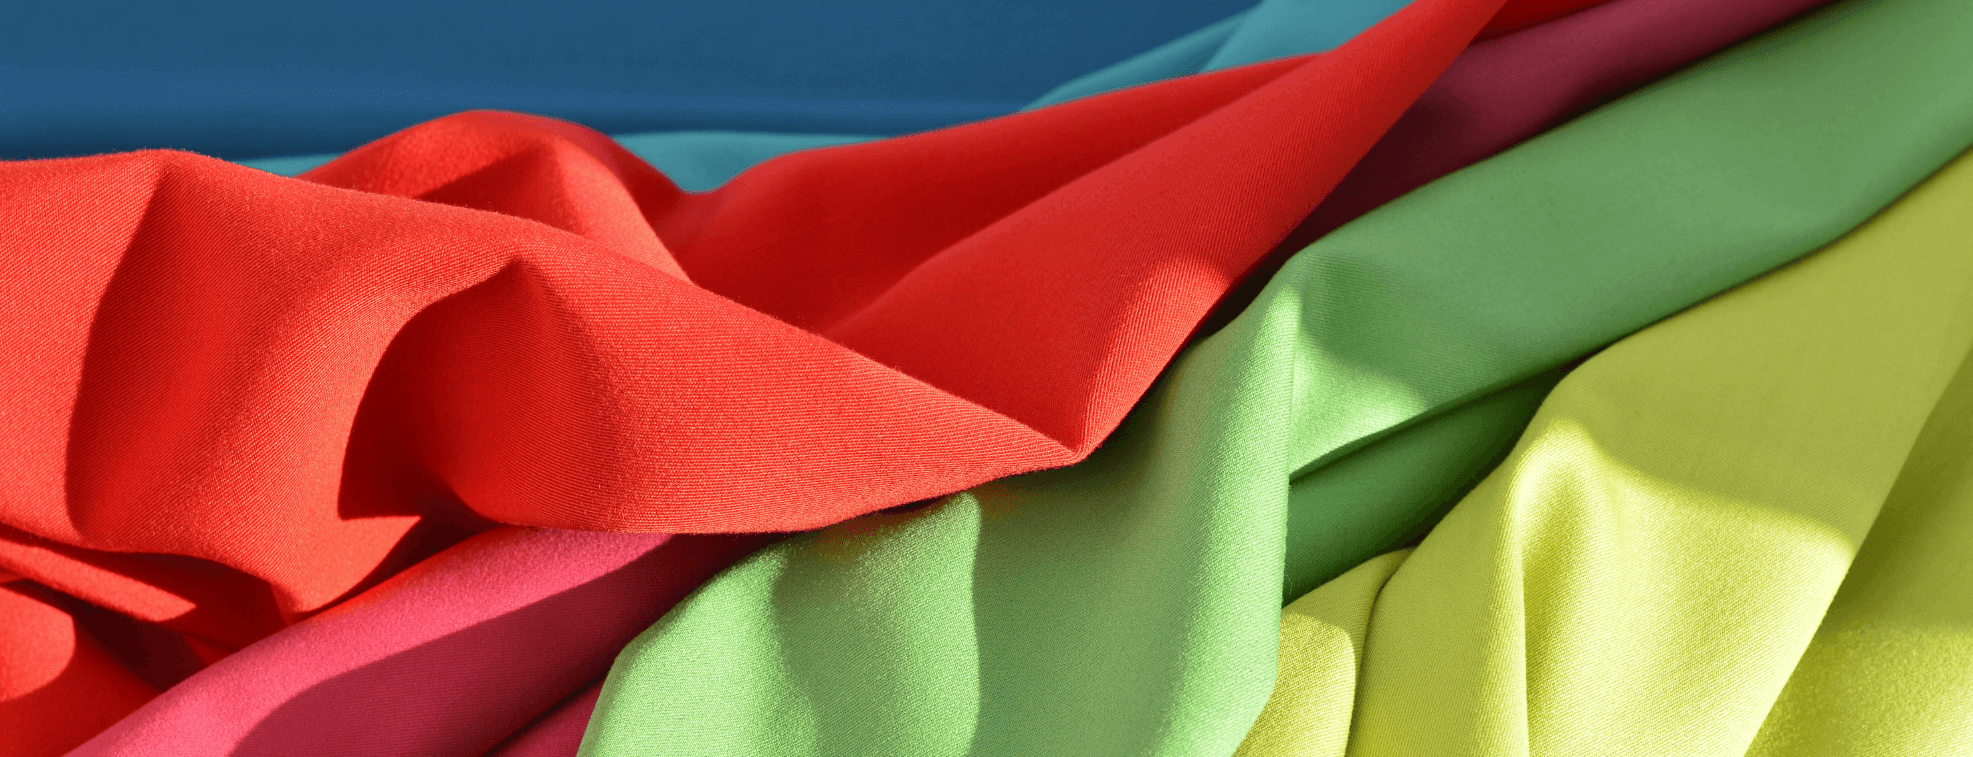 Bright synthetic fabrics of different colored placed over each other